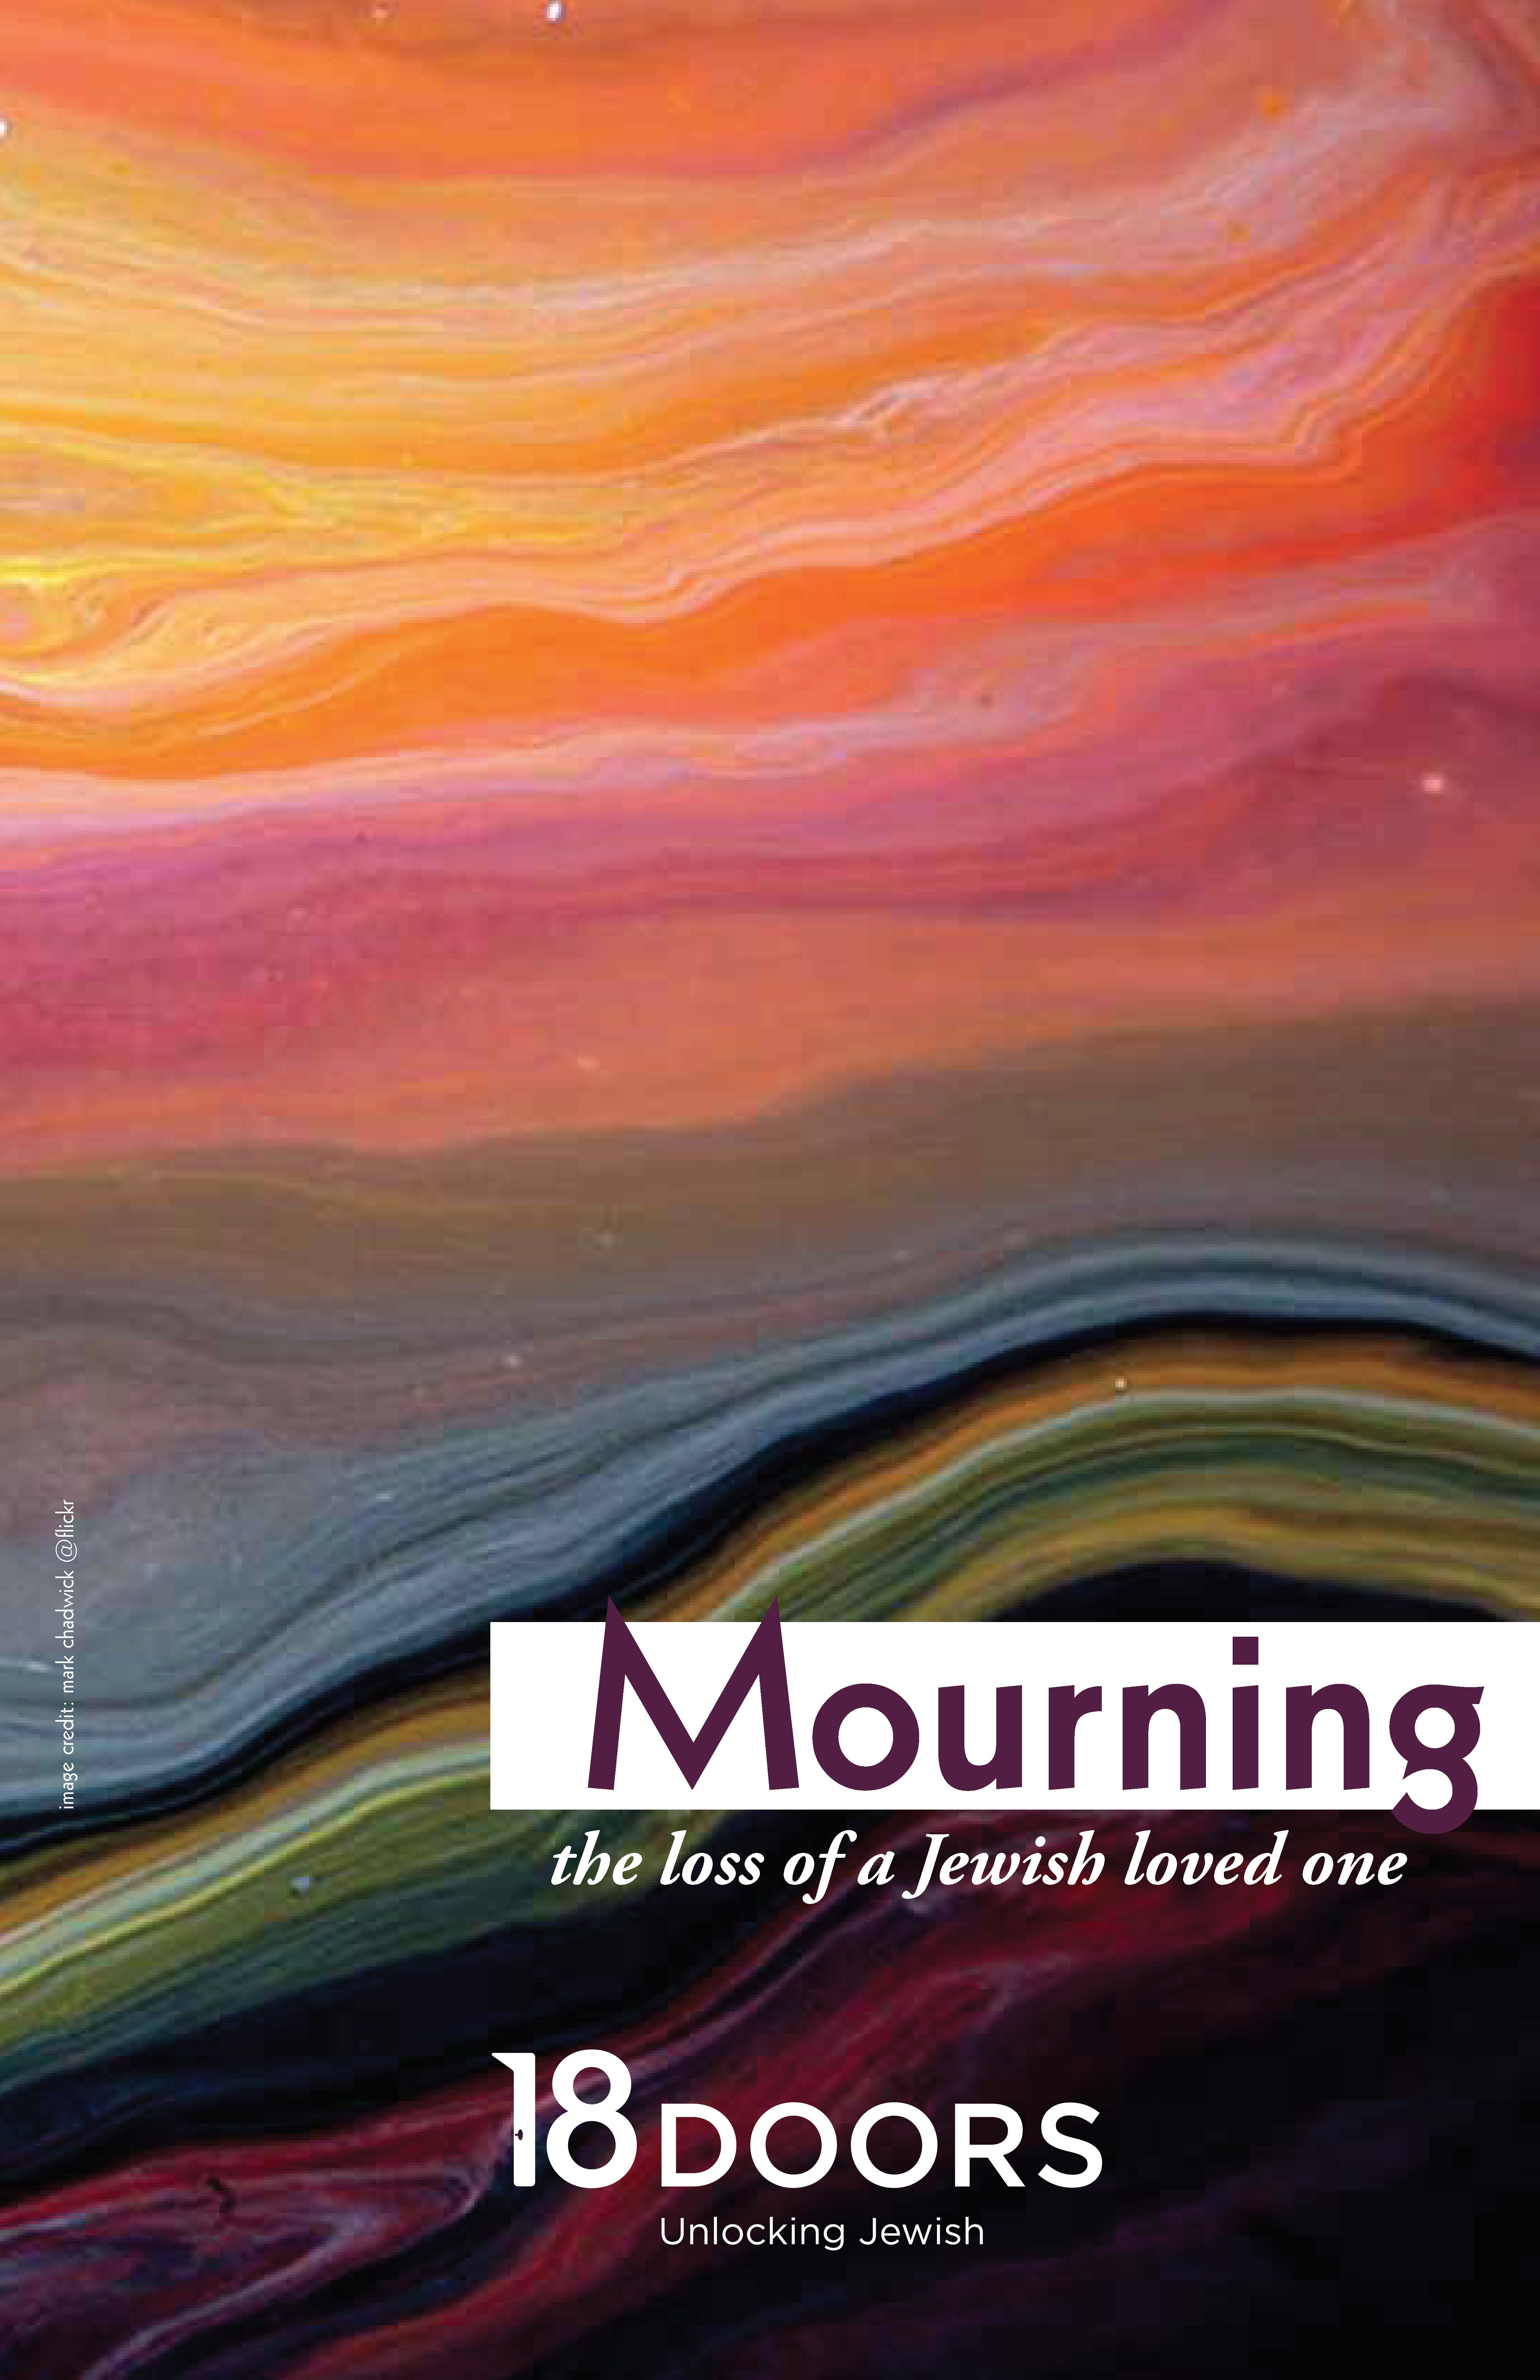 Mouring the loss of a Jewish loved one booklet